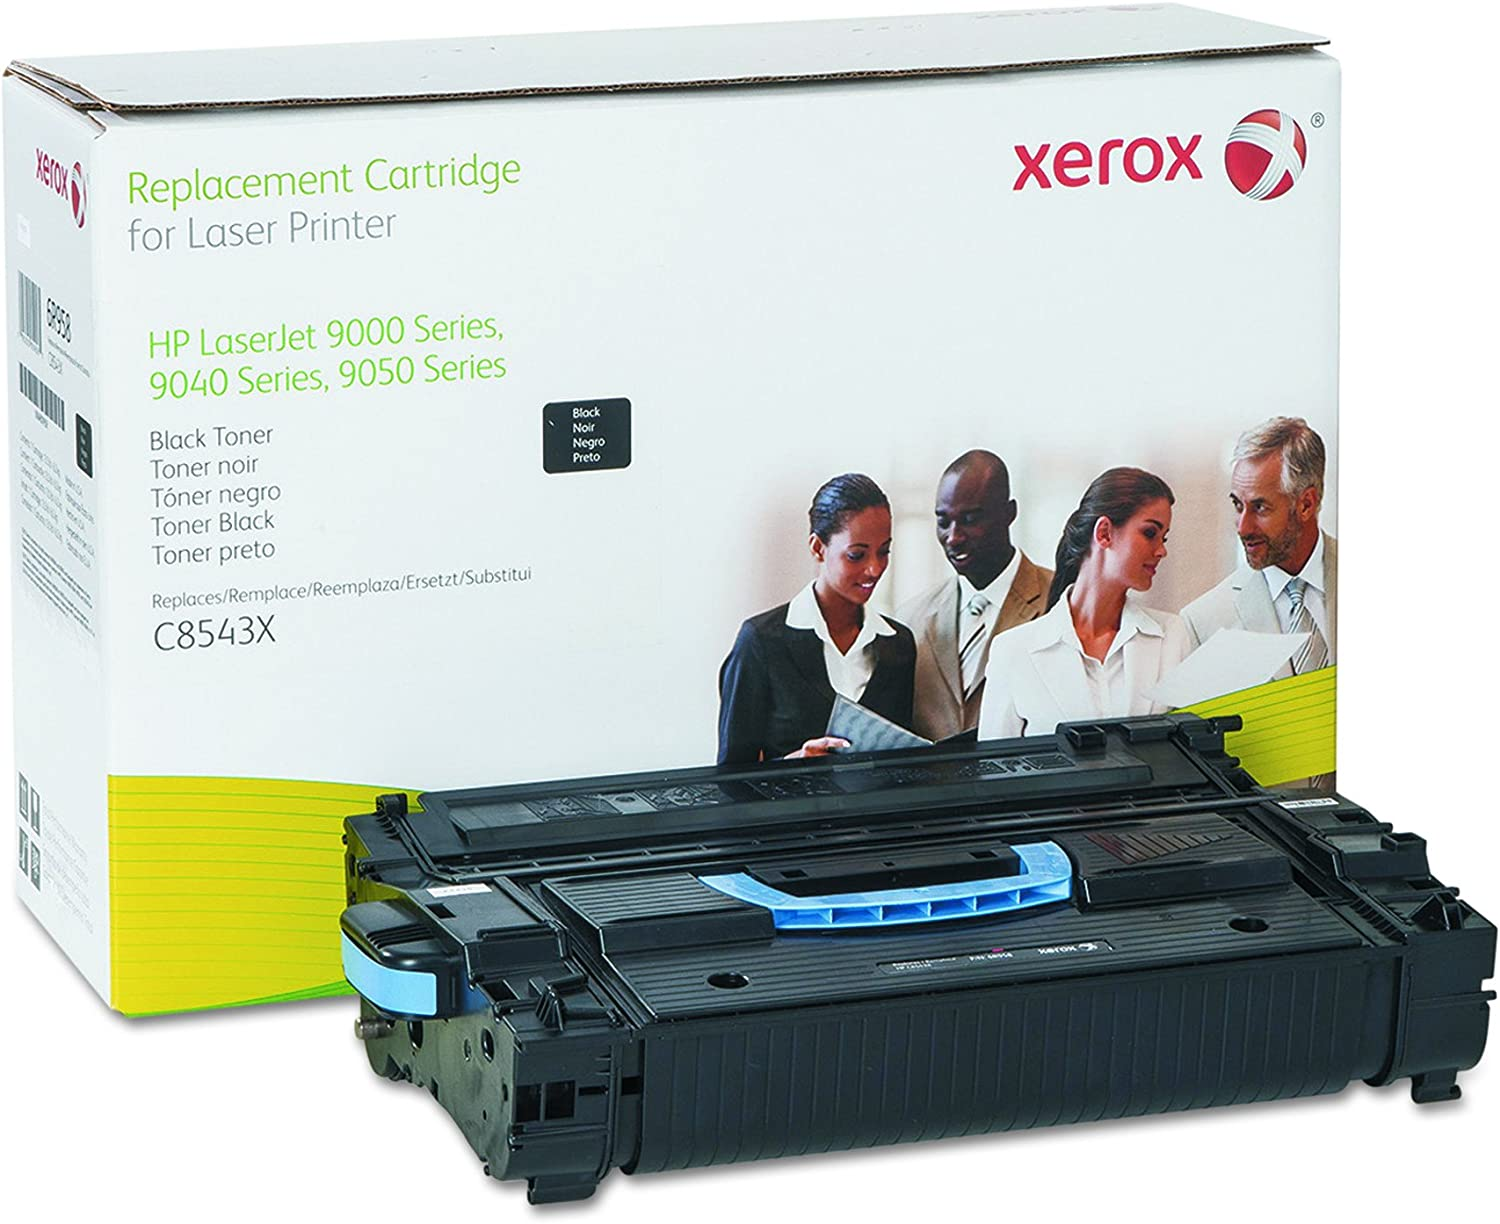 Genuine Xerox Replacement Toner Cartridge for the HP LaserJet 9000 Series, 9050 Series, 9040 series, M9040, M9050 (C8543X), 6R958